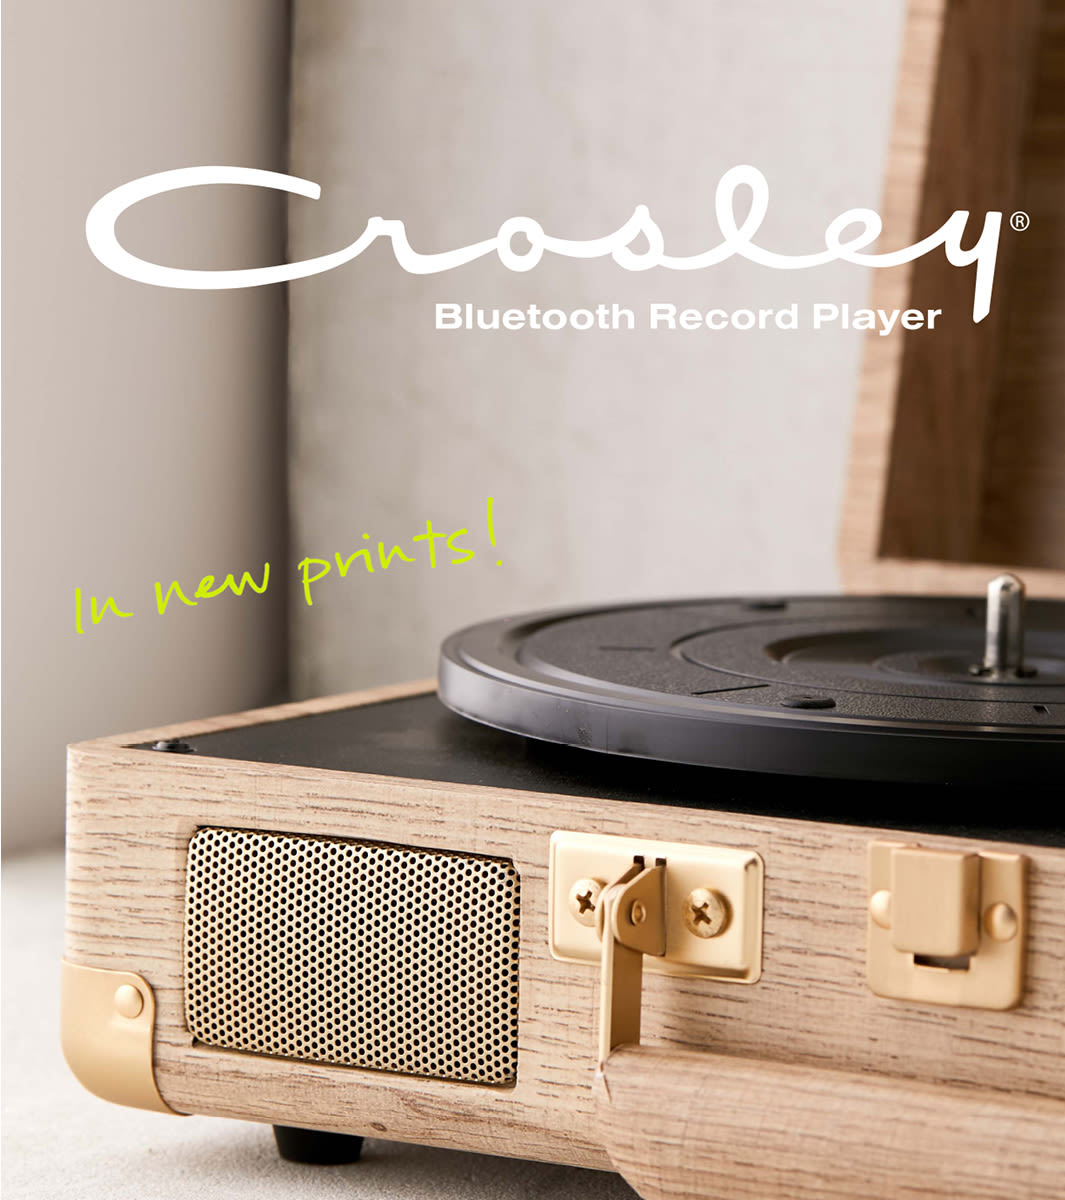 new styles a61a1 4c451 Crosley Cruiser Bluetooth Record Player